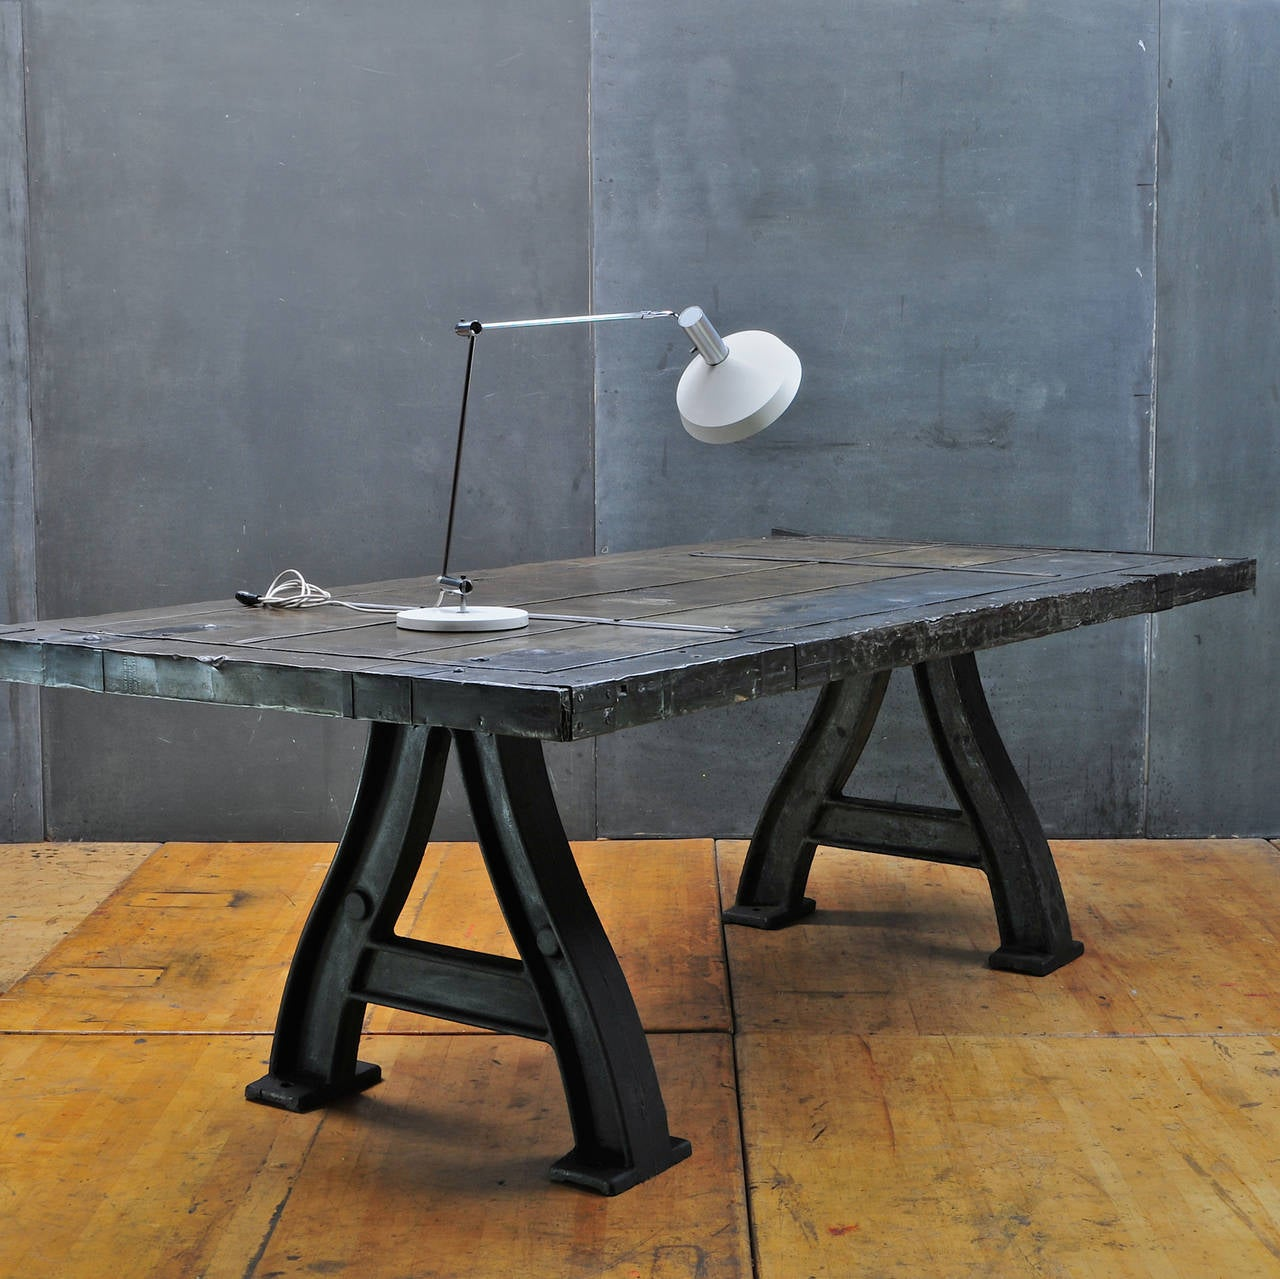 Iron Table Legs : Monumental Cast Iron Industrial Turbine Leg Dining Table at 1stdibs